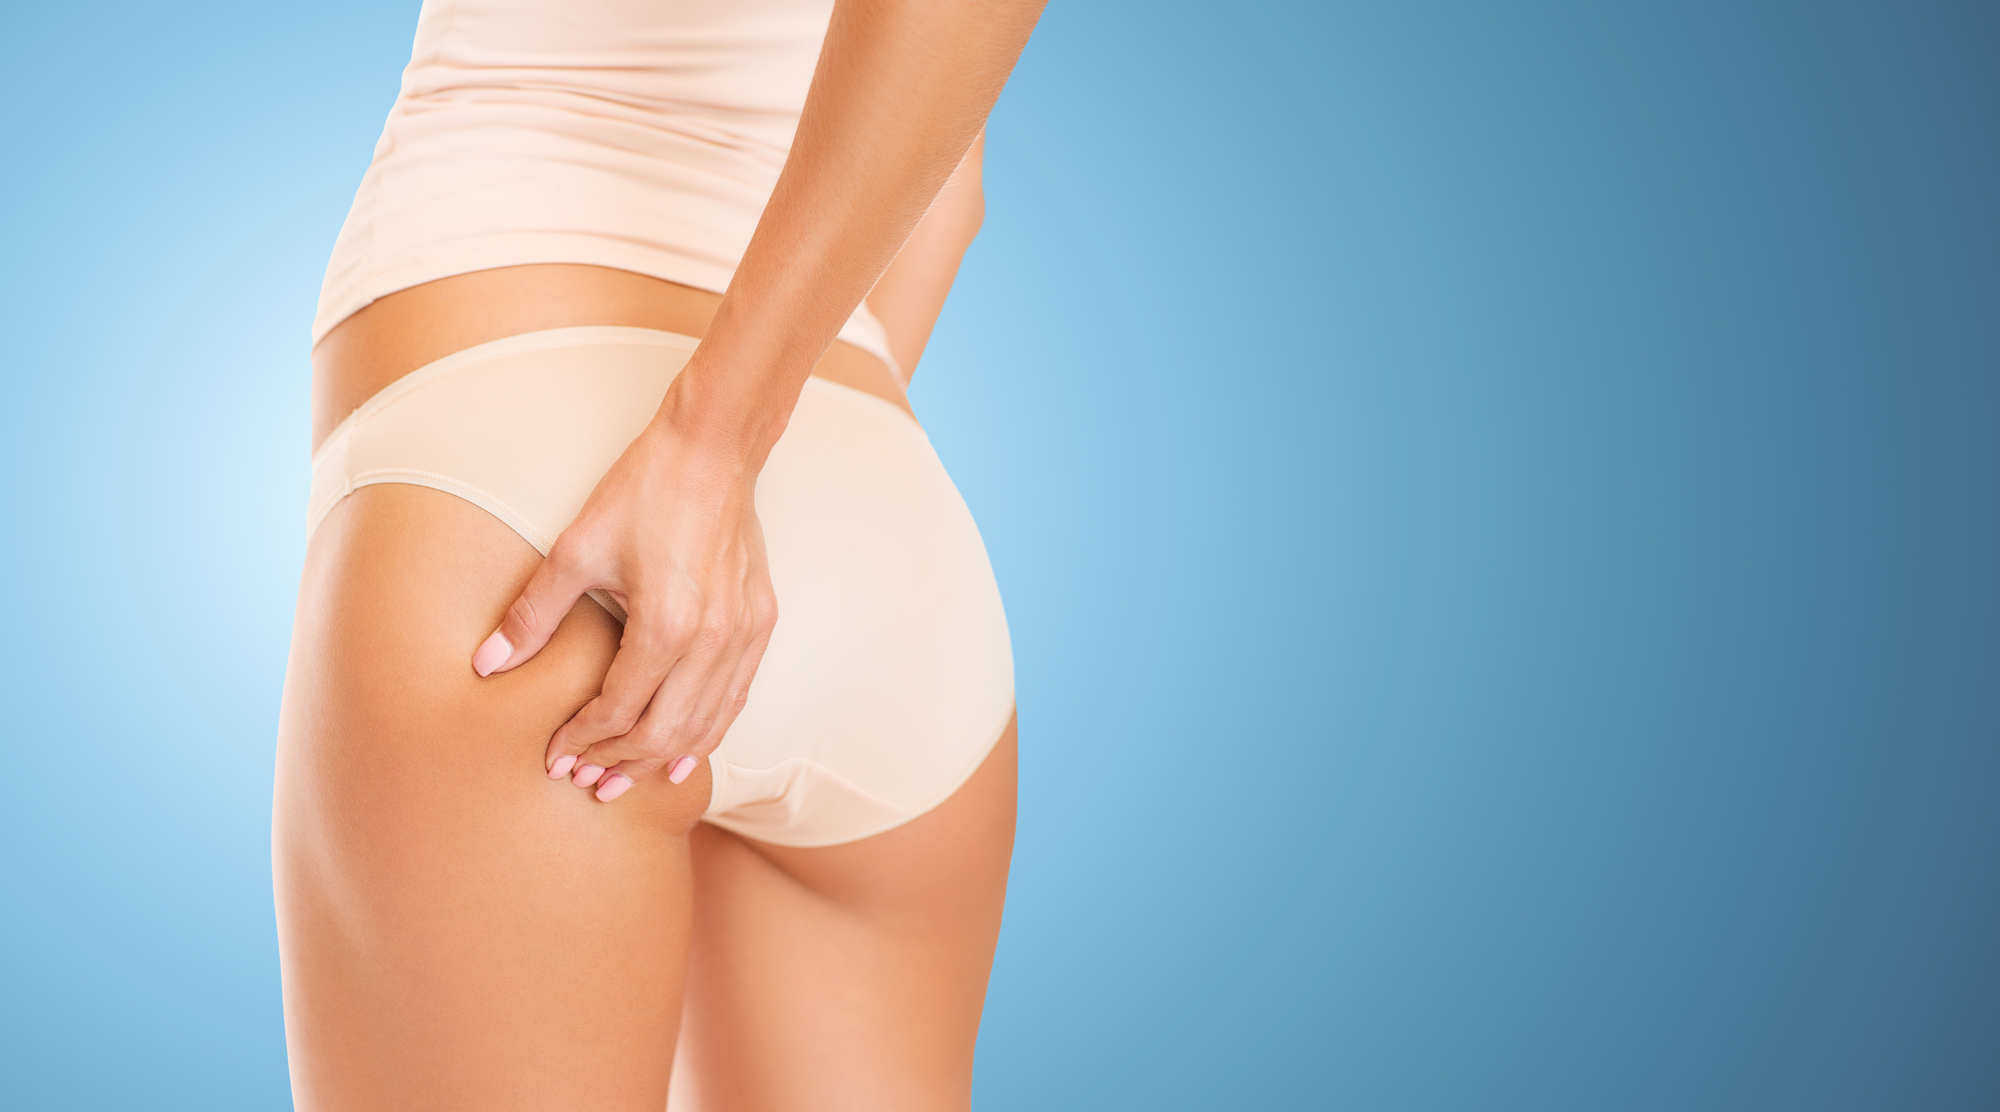 people, health, body care and beauty concept - close up of woman in underwear touching buttock over blue background